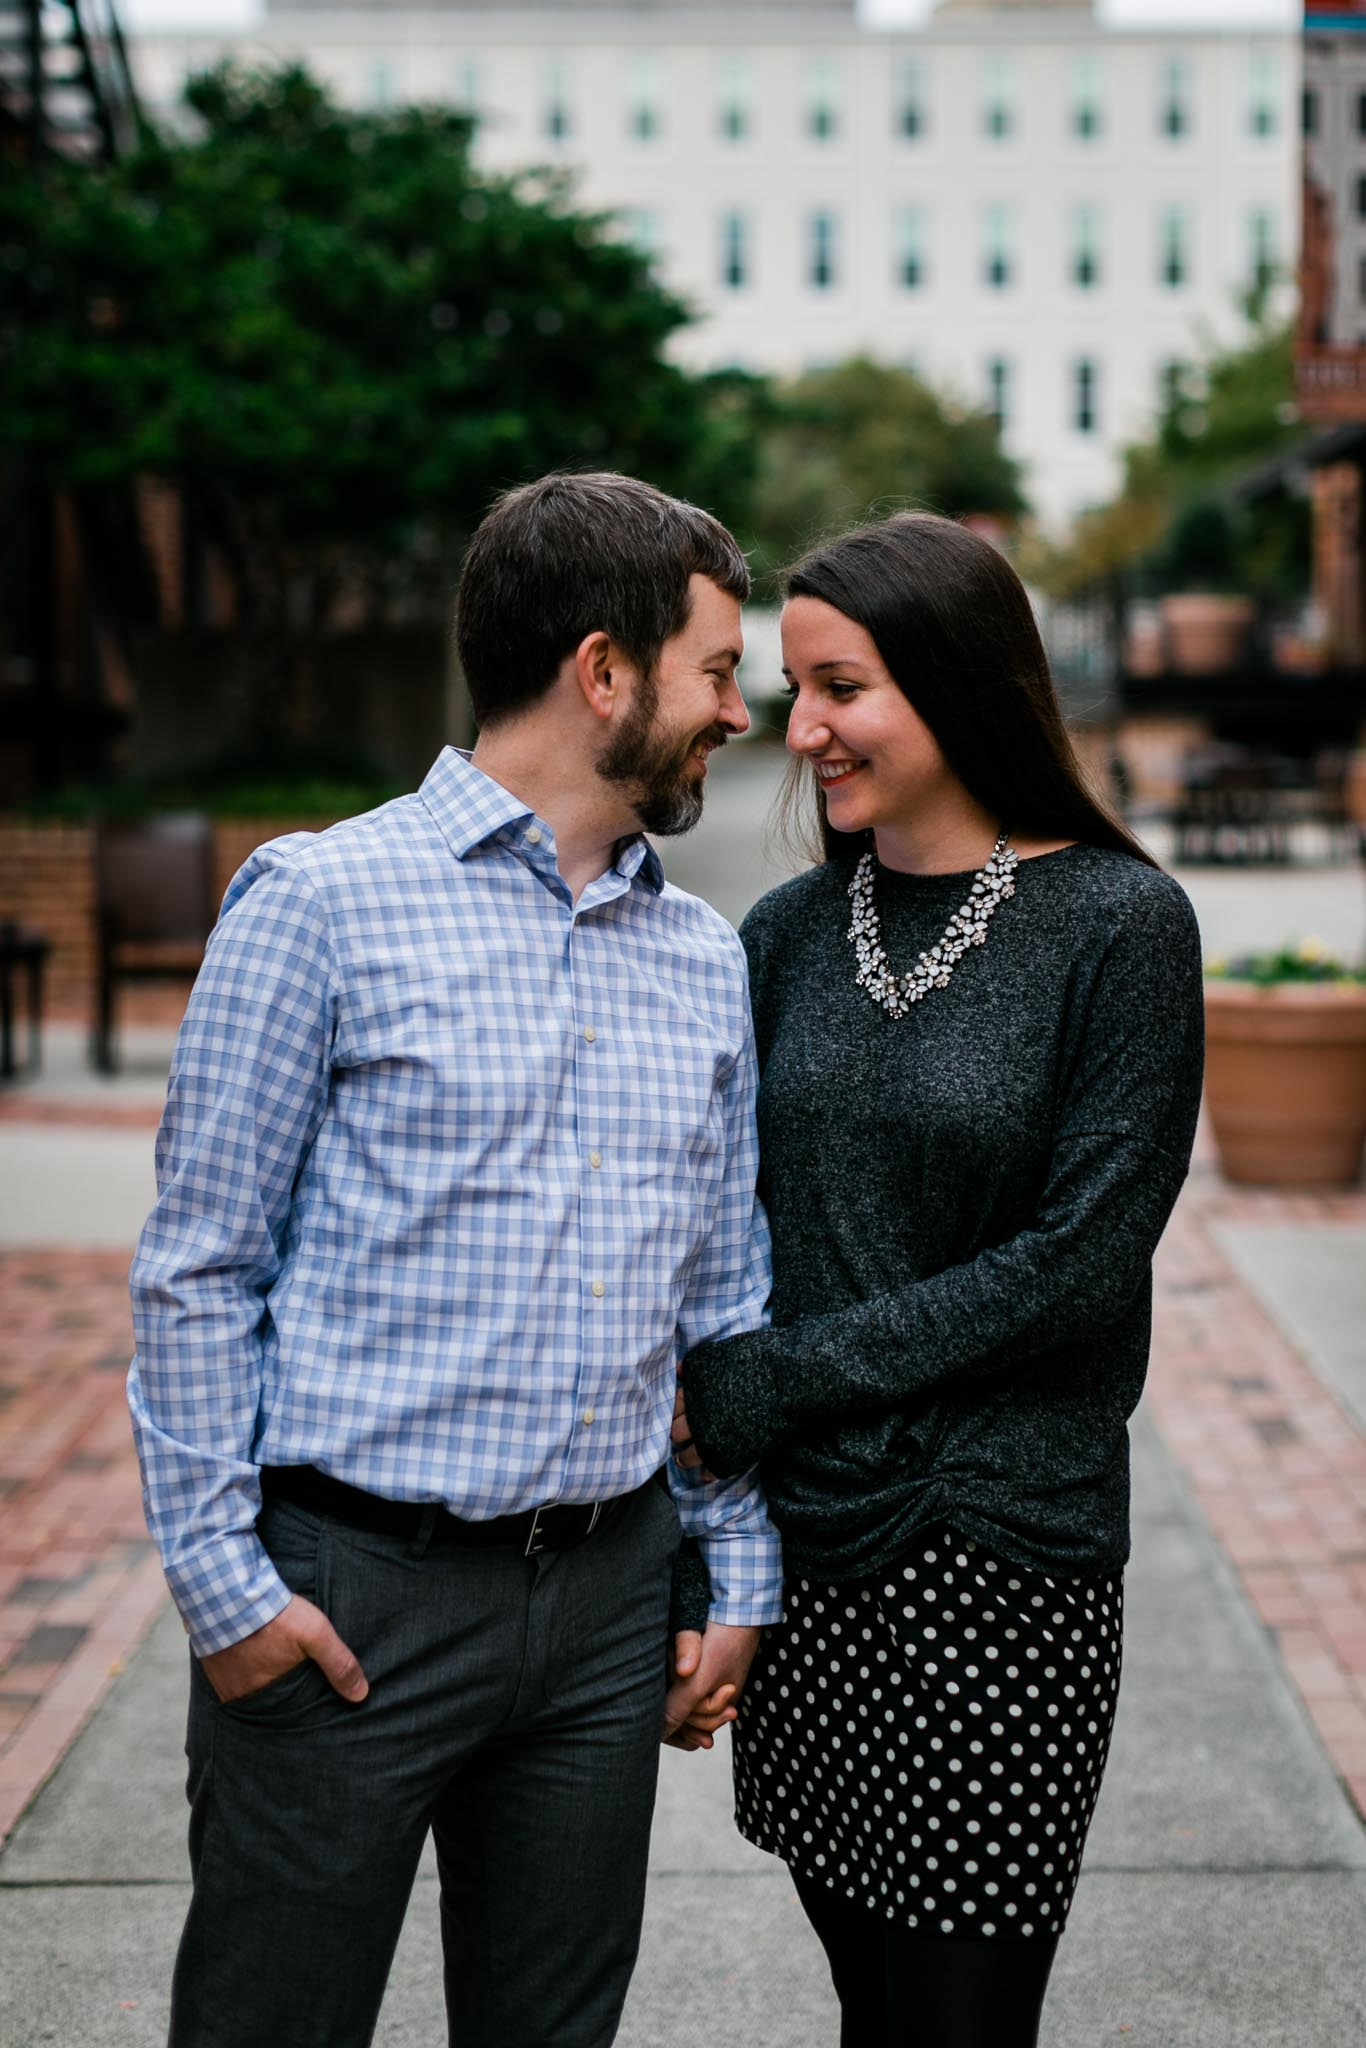 Outdoor Family Photo at American Tobacco Campus | Durham Photographer | By G. Lin Photography